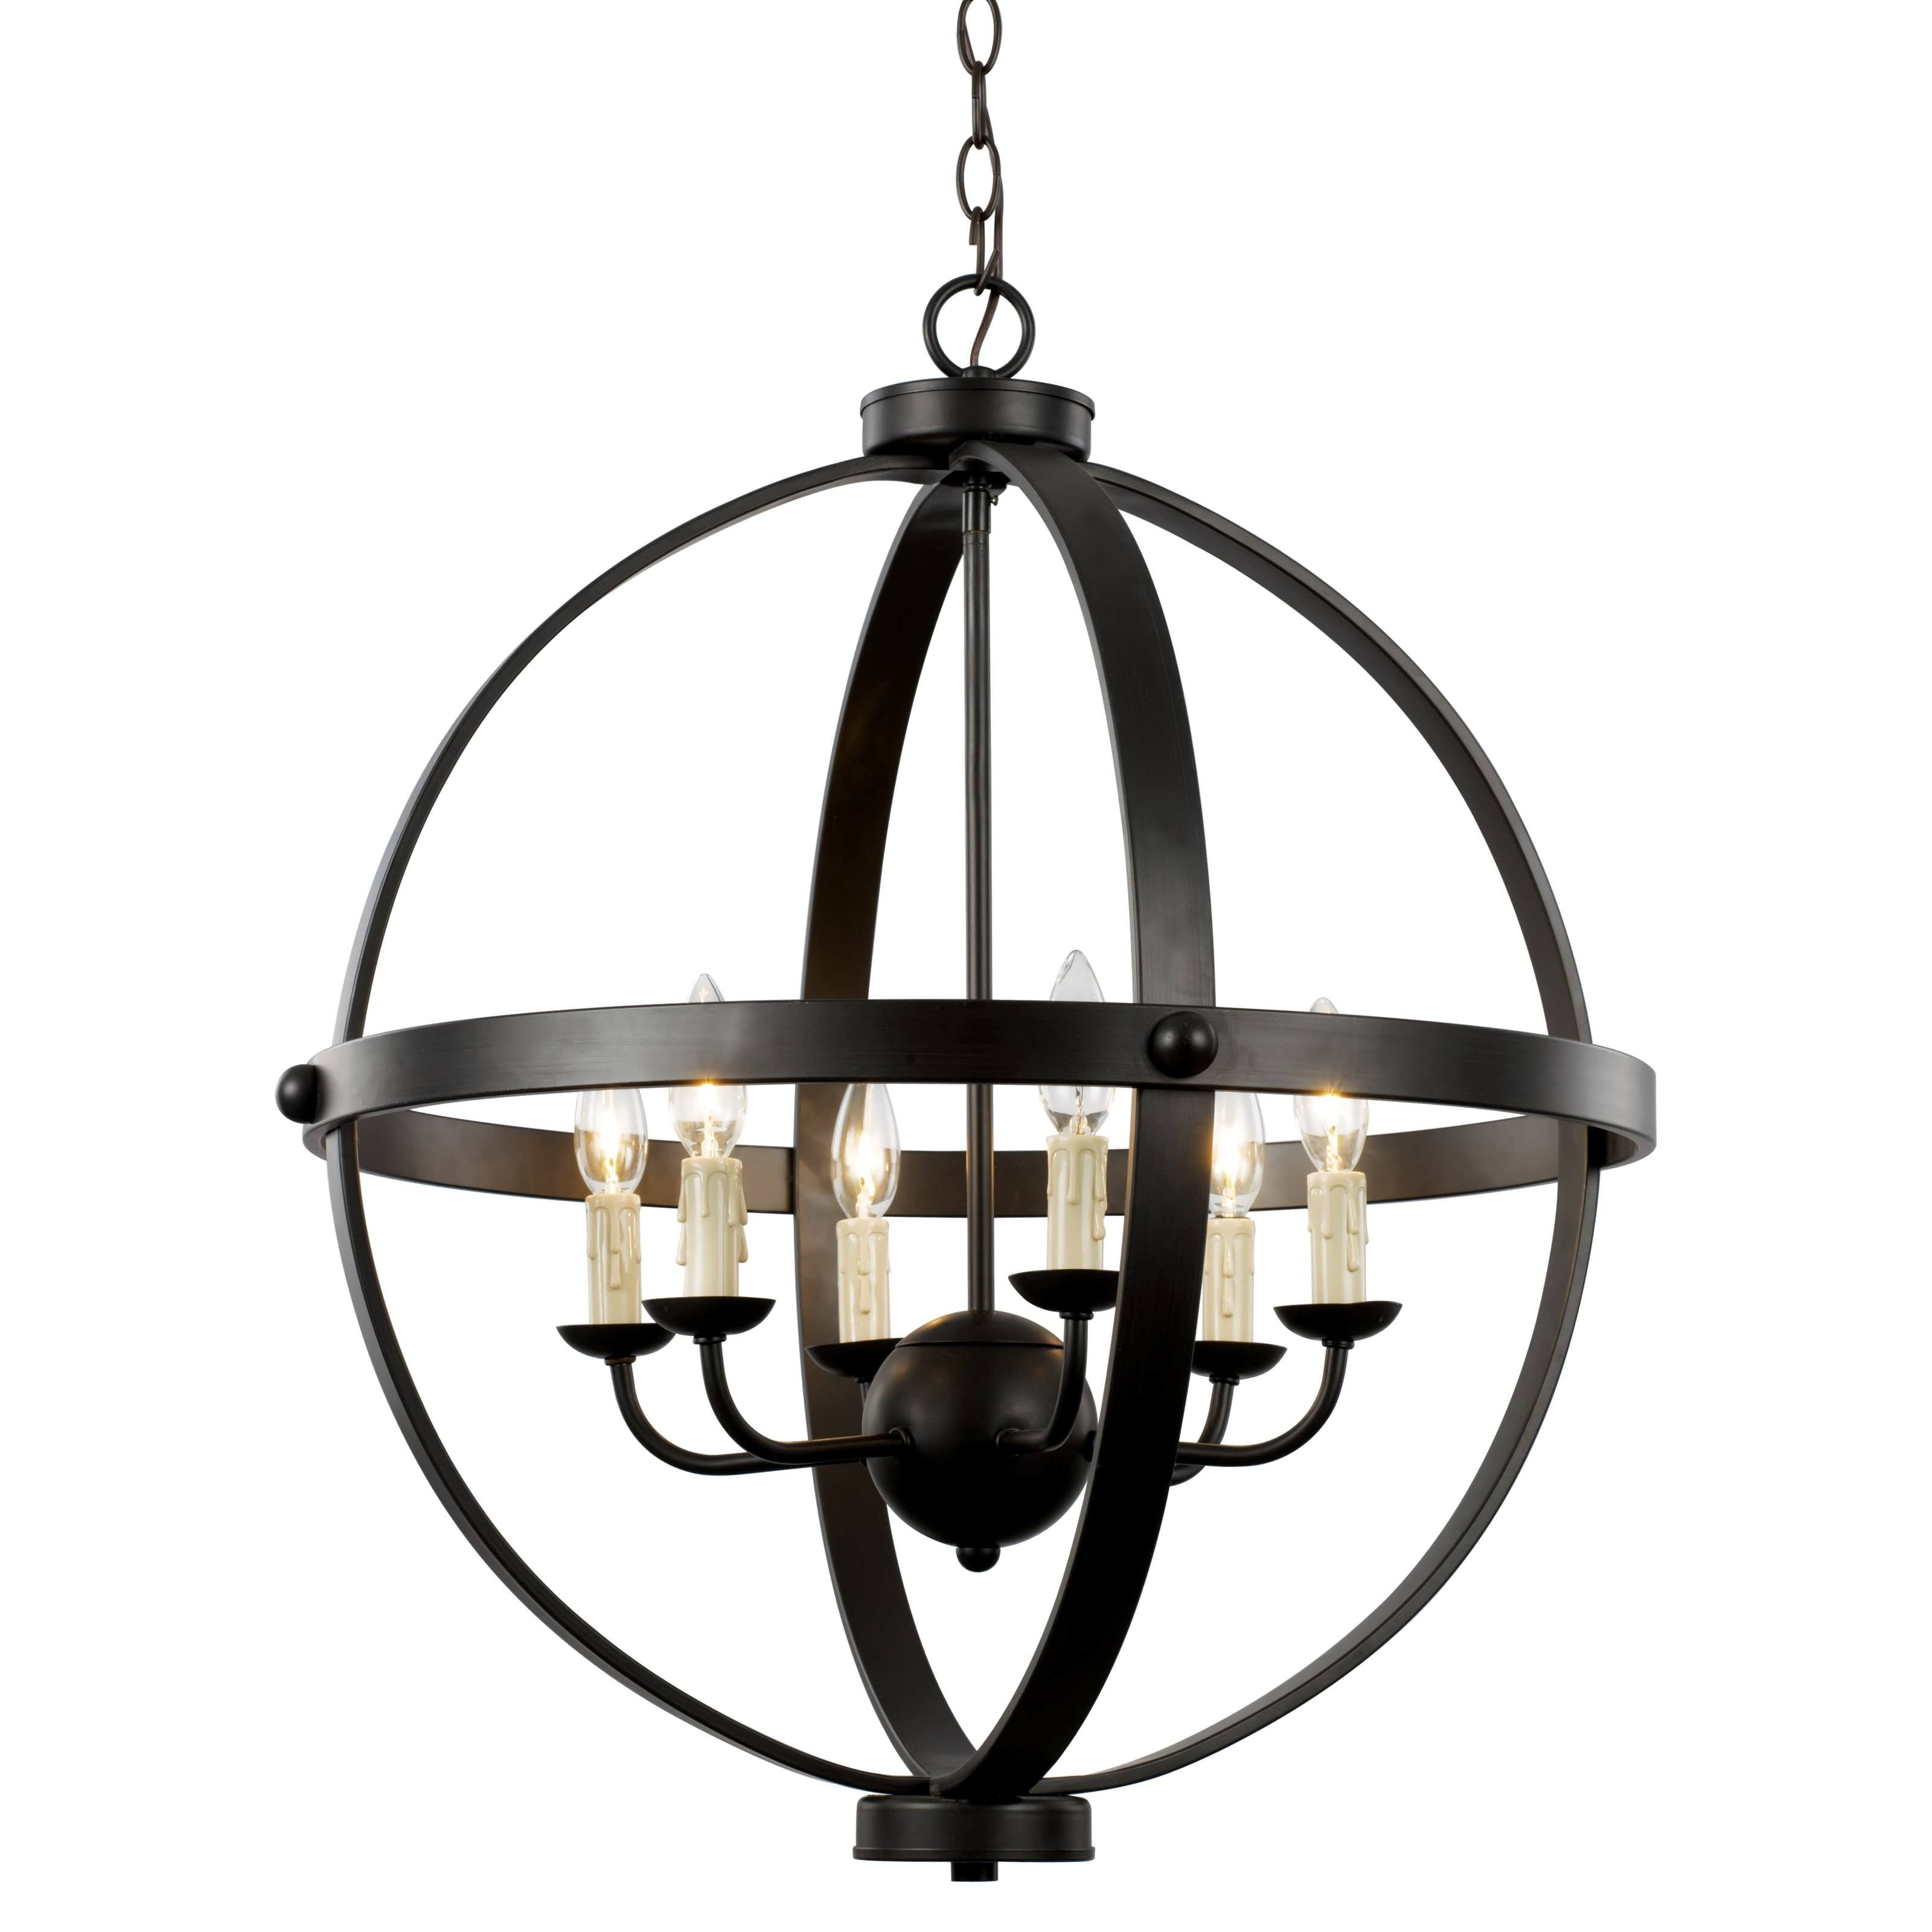 Best And Newest Metal Ball Chandeliers Pertaining To Chandeliers Design : Amazing Glass Ball Chandelier Modern Orb (View 4 of 20)